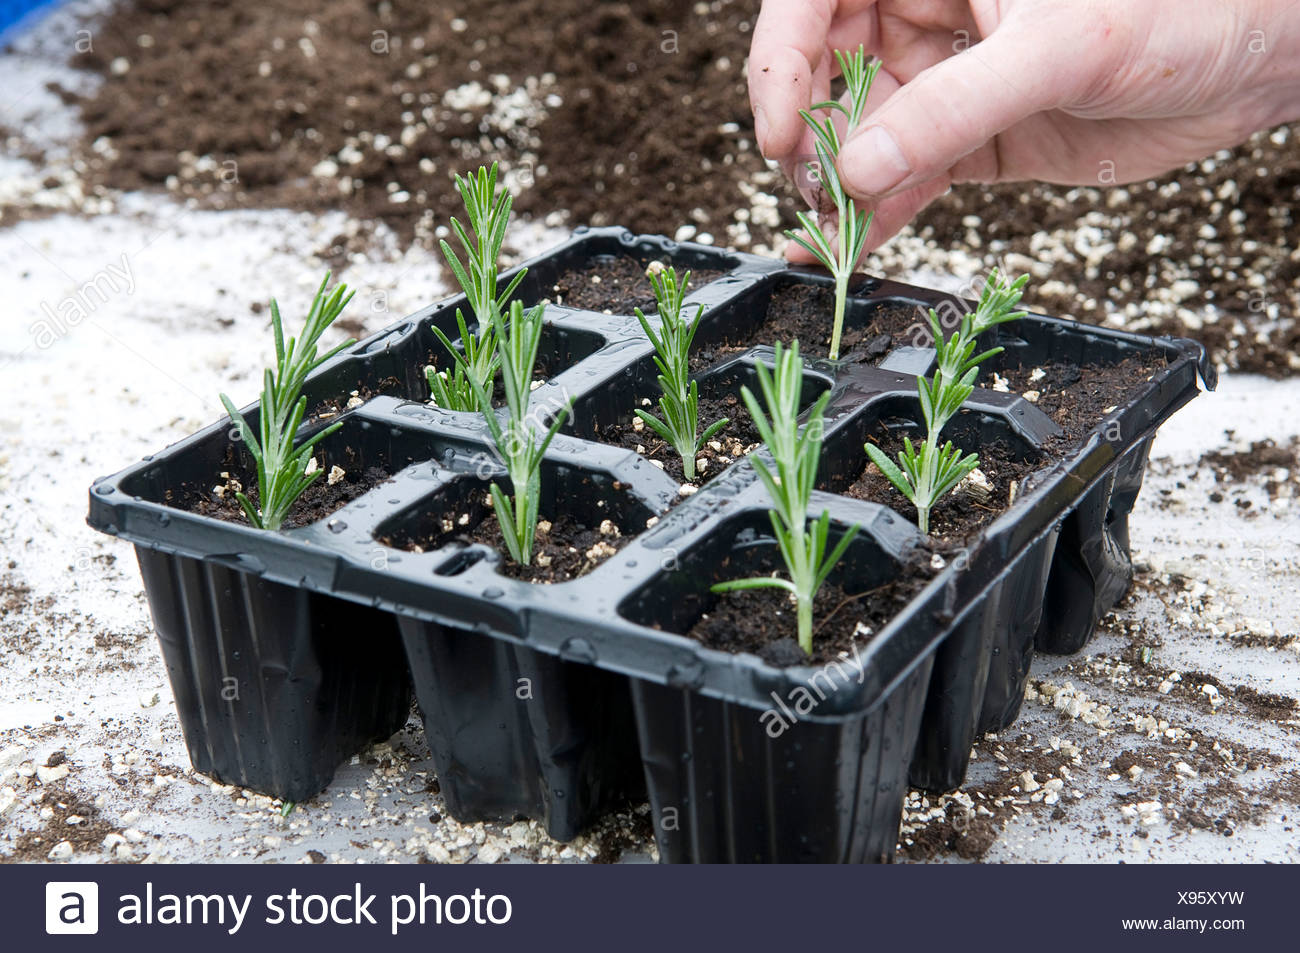 Planting Cuttings Photos & Planting Cuttings Images - Alamy